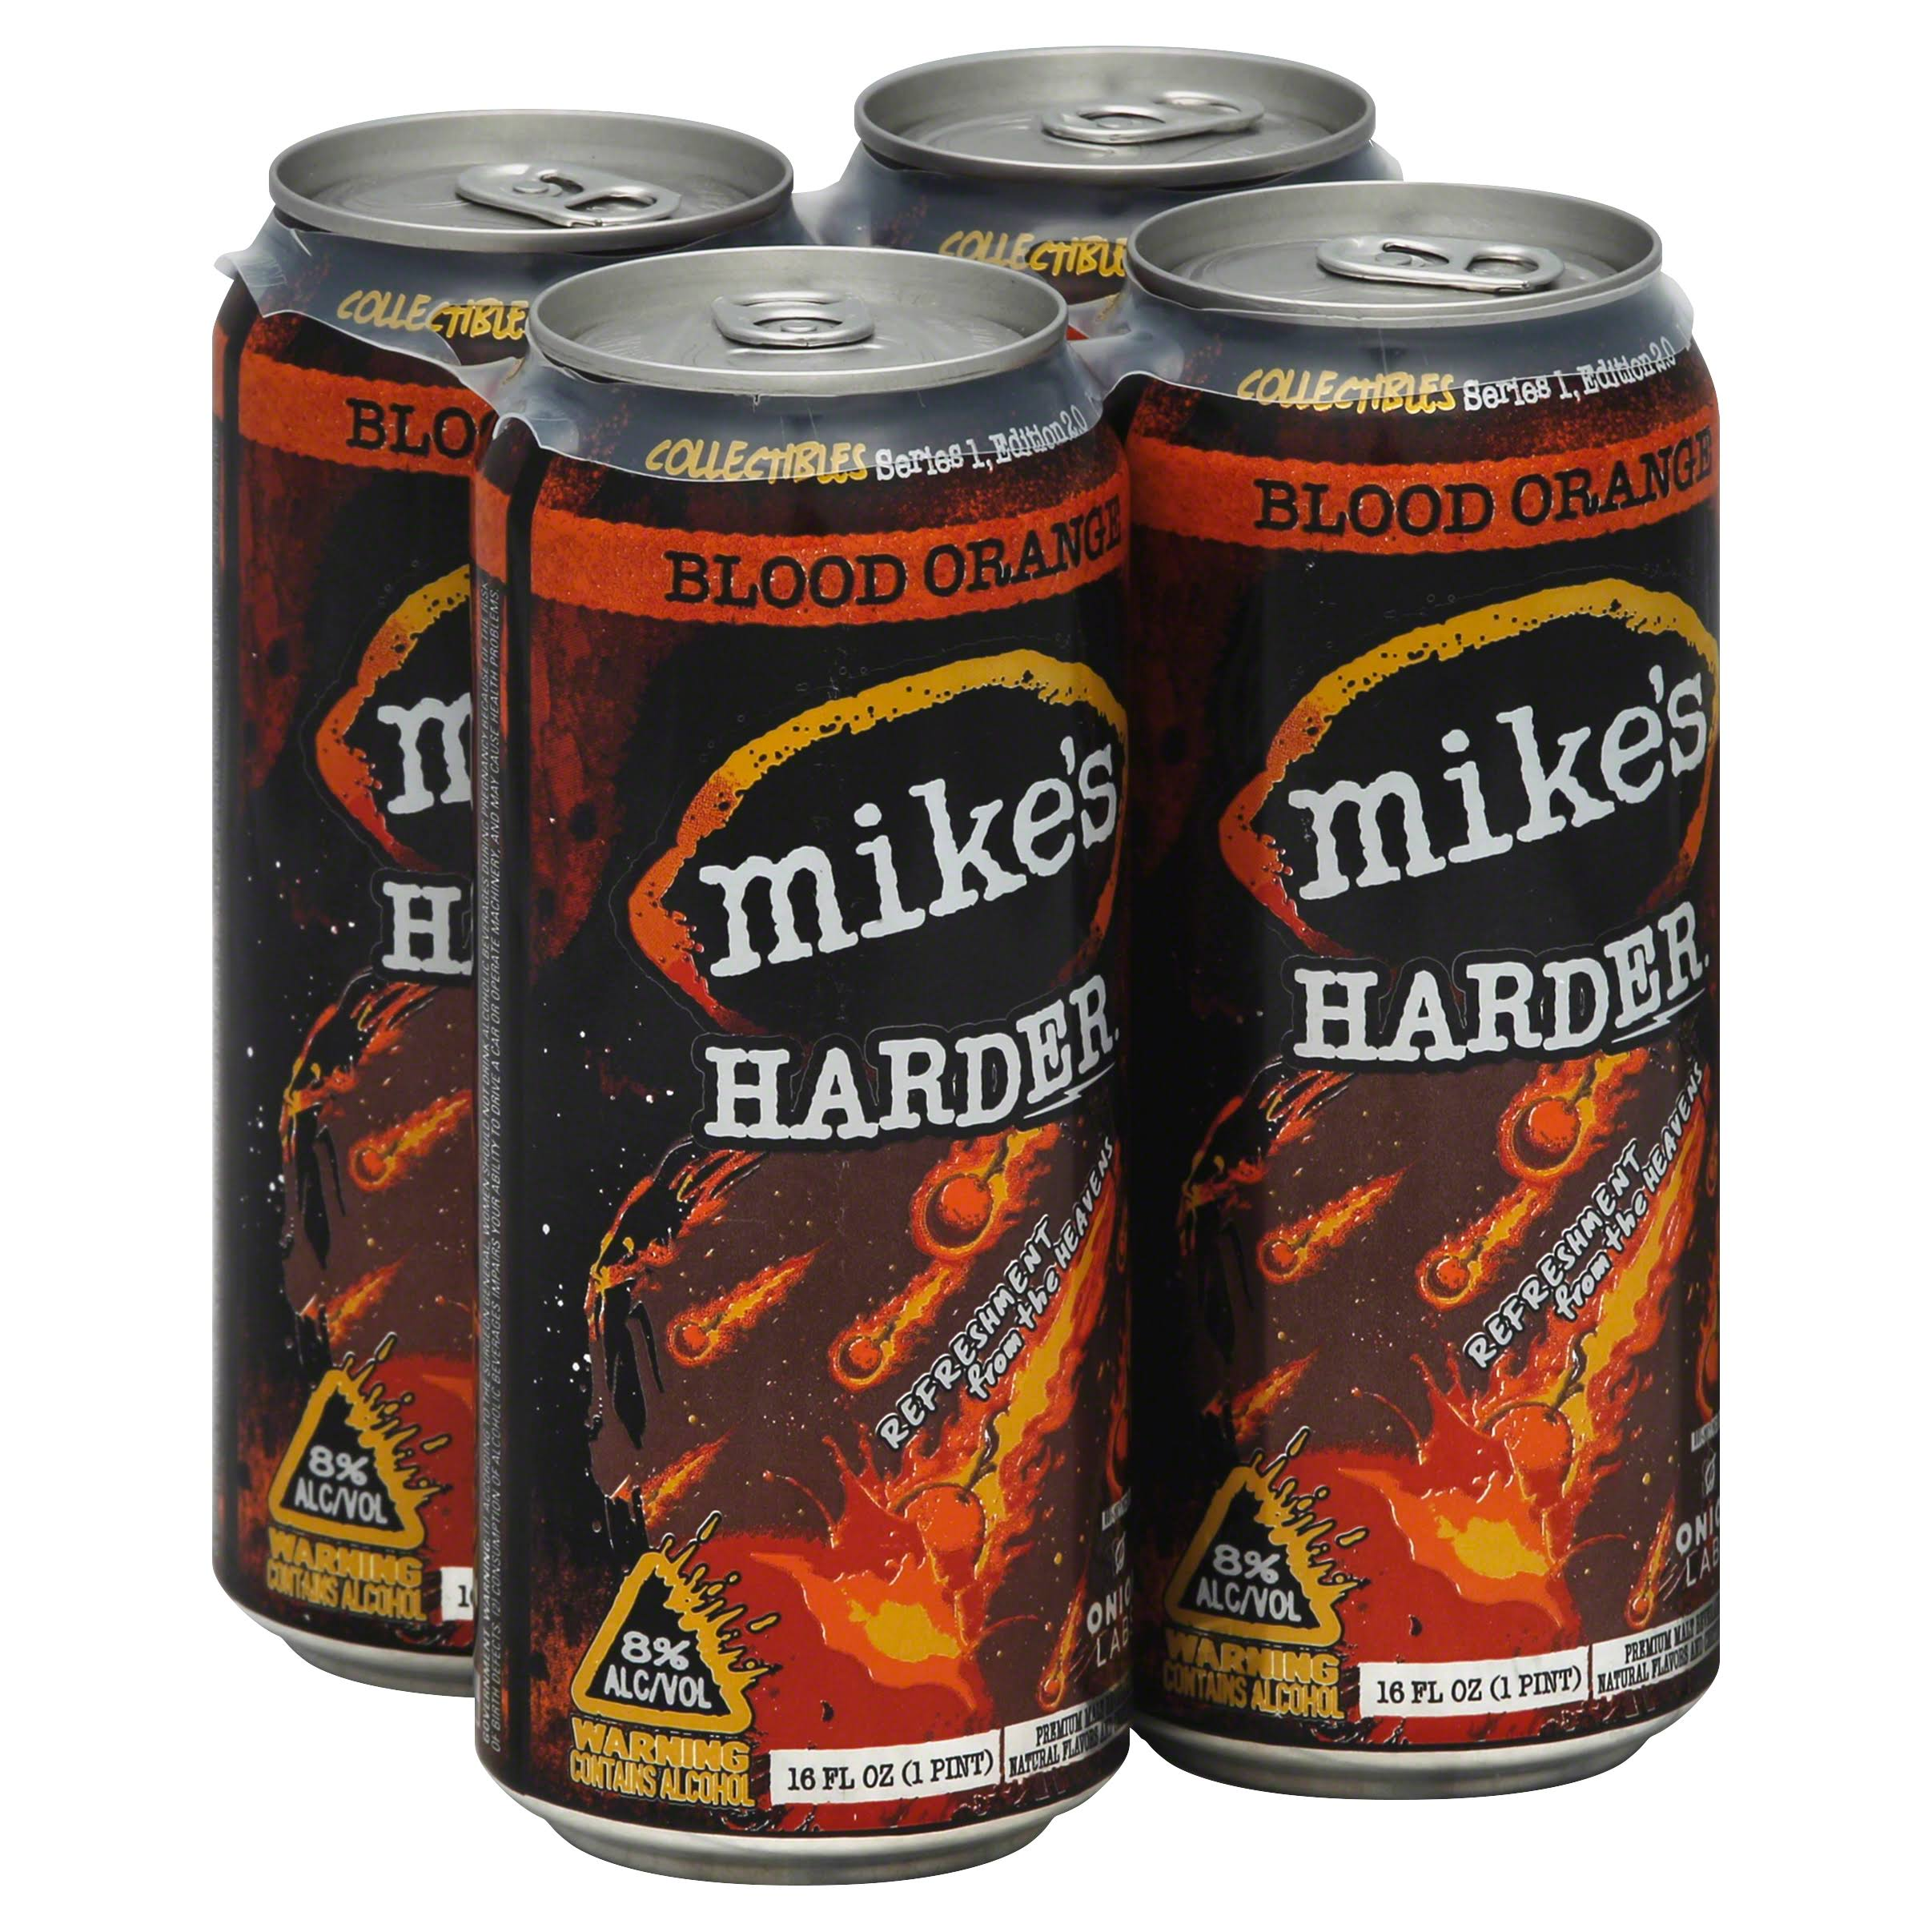 Mikes Malt Beverage, Premium, Harder Blood Orange - 4 pack, 16 fl oz cans